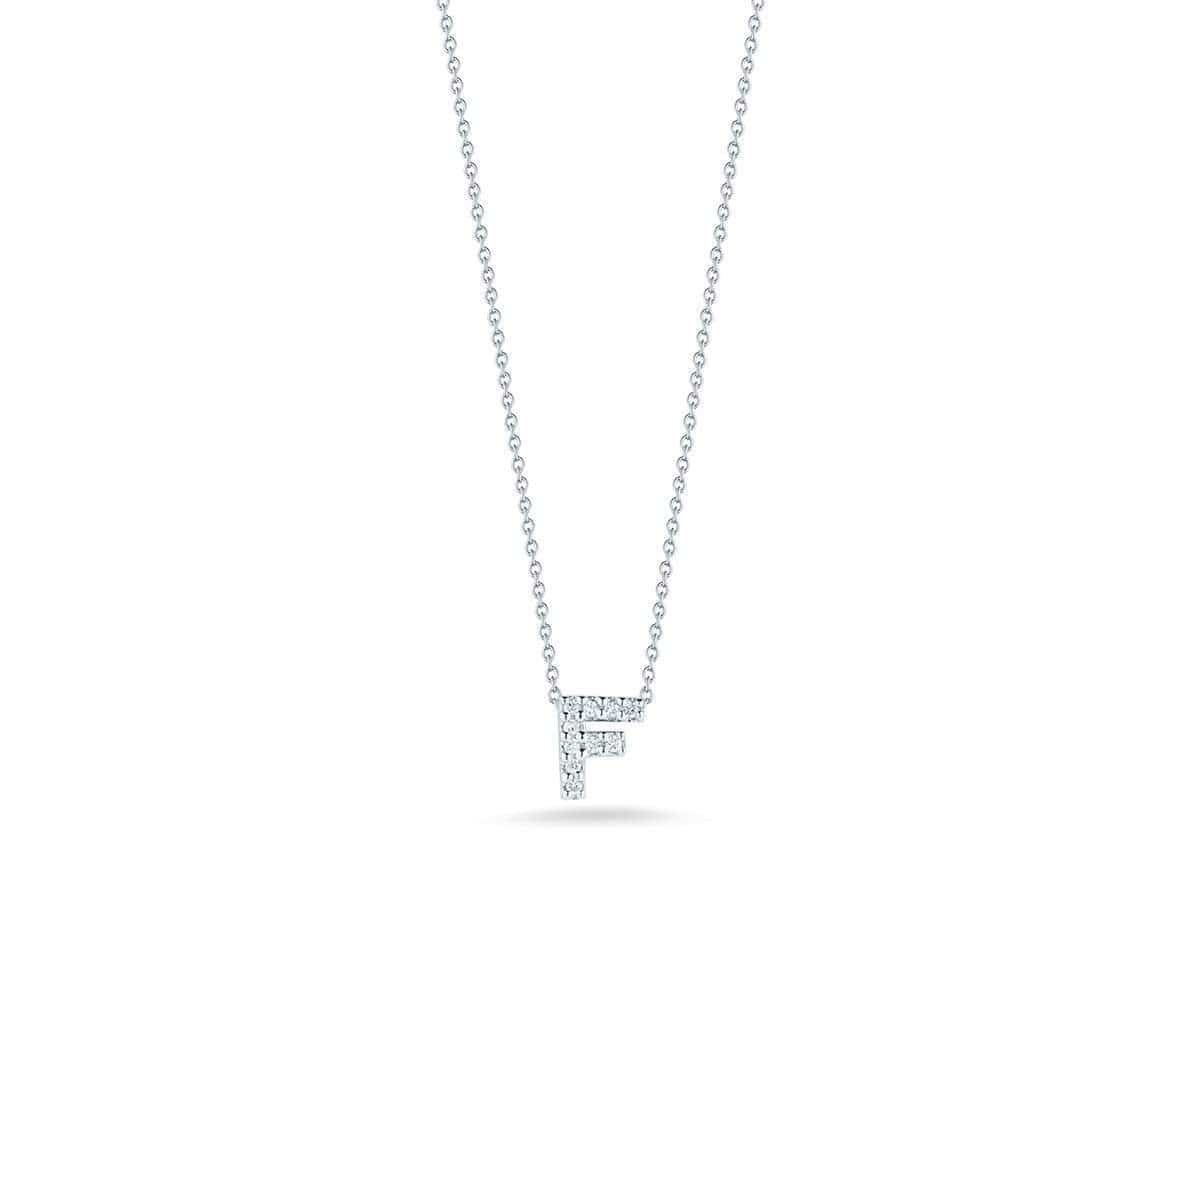 18k White Gold & Diamond Love Letter F Necklace - 001634AWCHXF - Roberto Coin